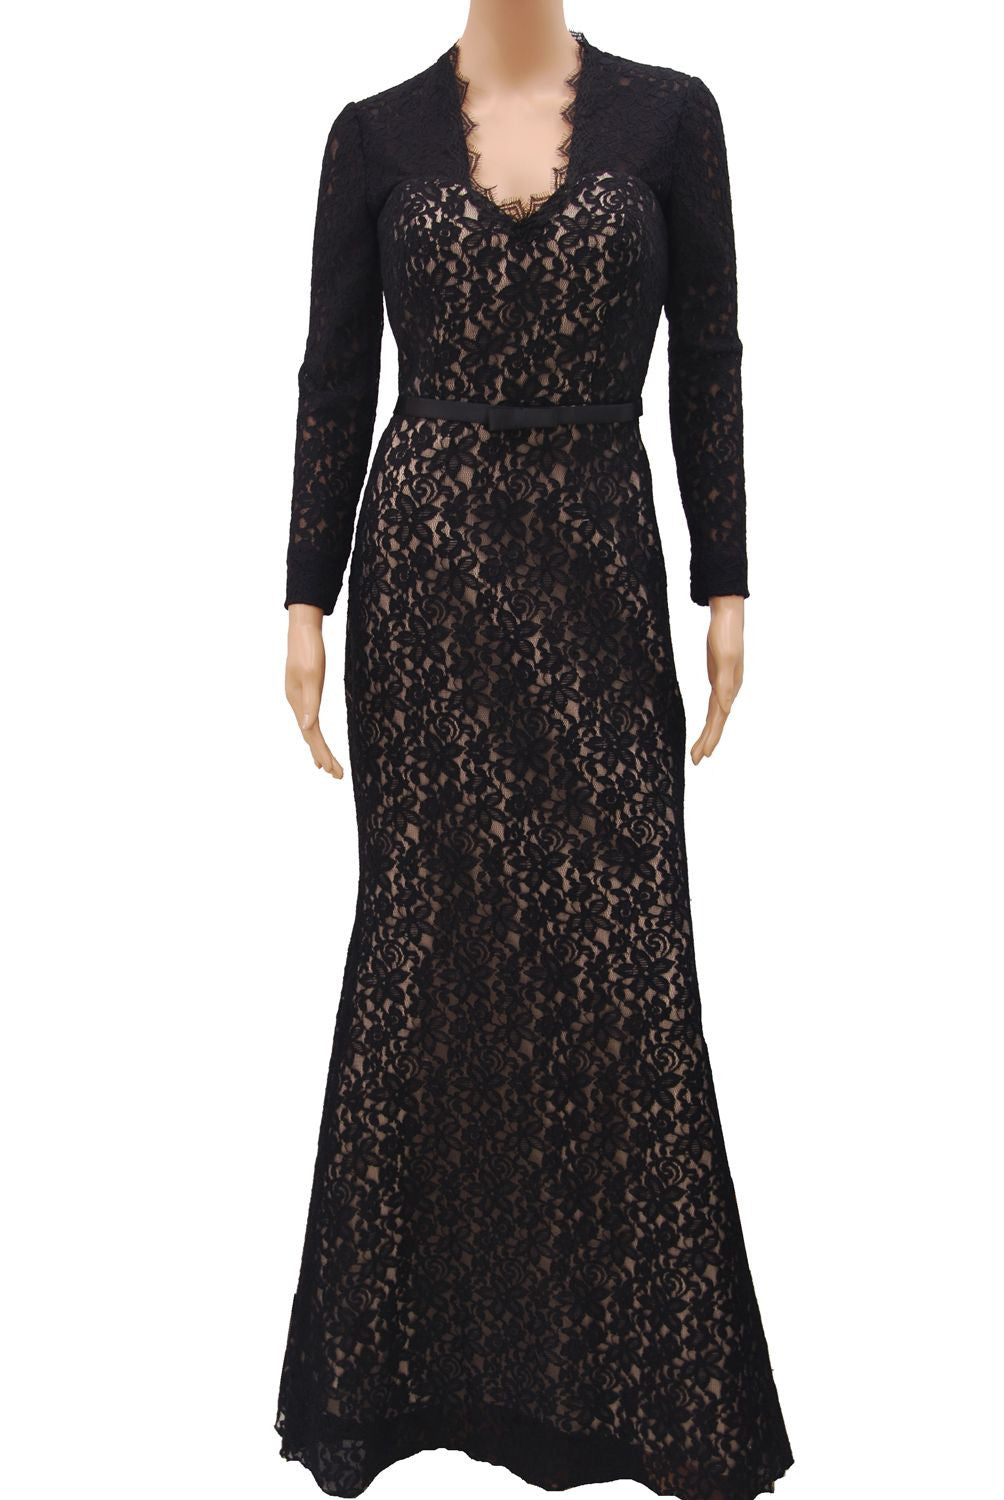 Long Sleeve Black lace V neckline with scallop open back design ...